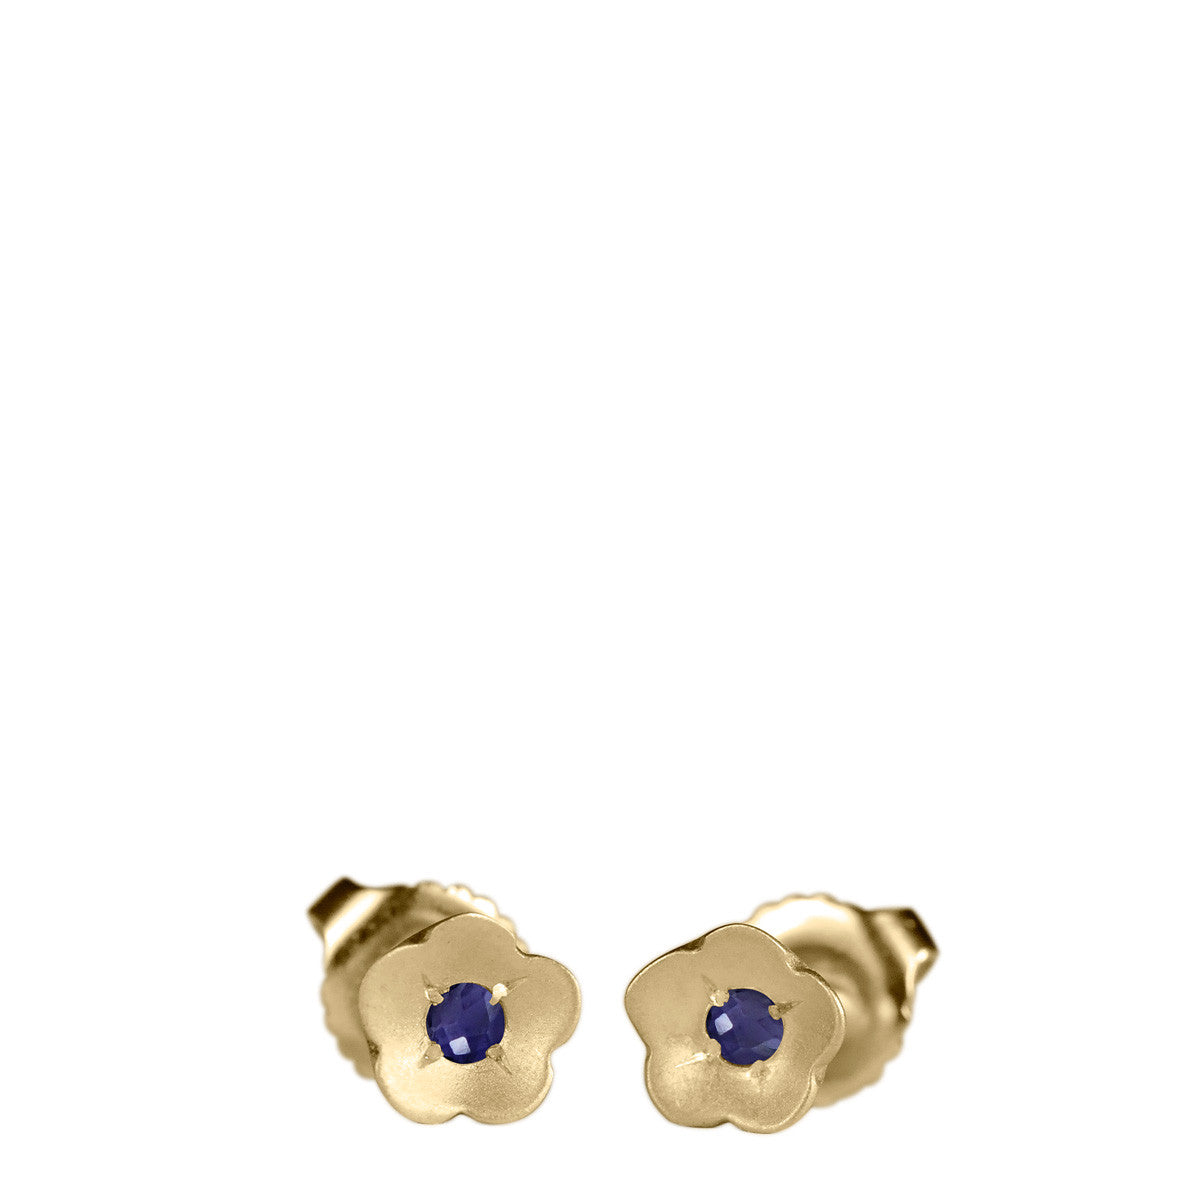 10K Gold Buttercup Stud Earrings with Iolite